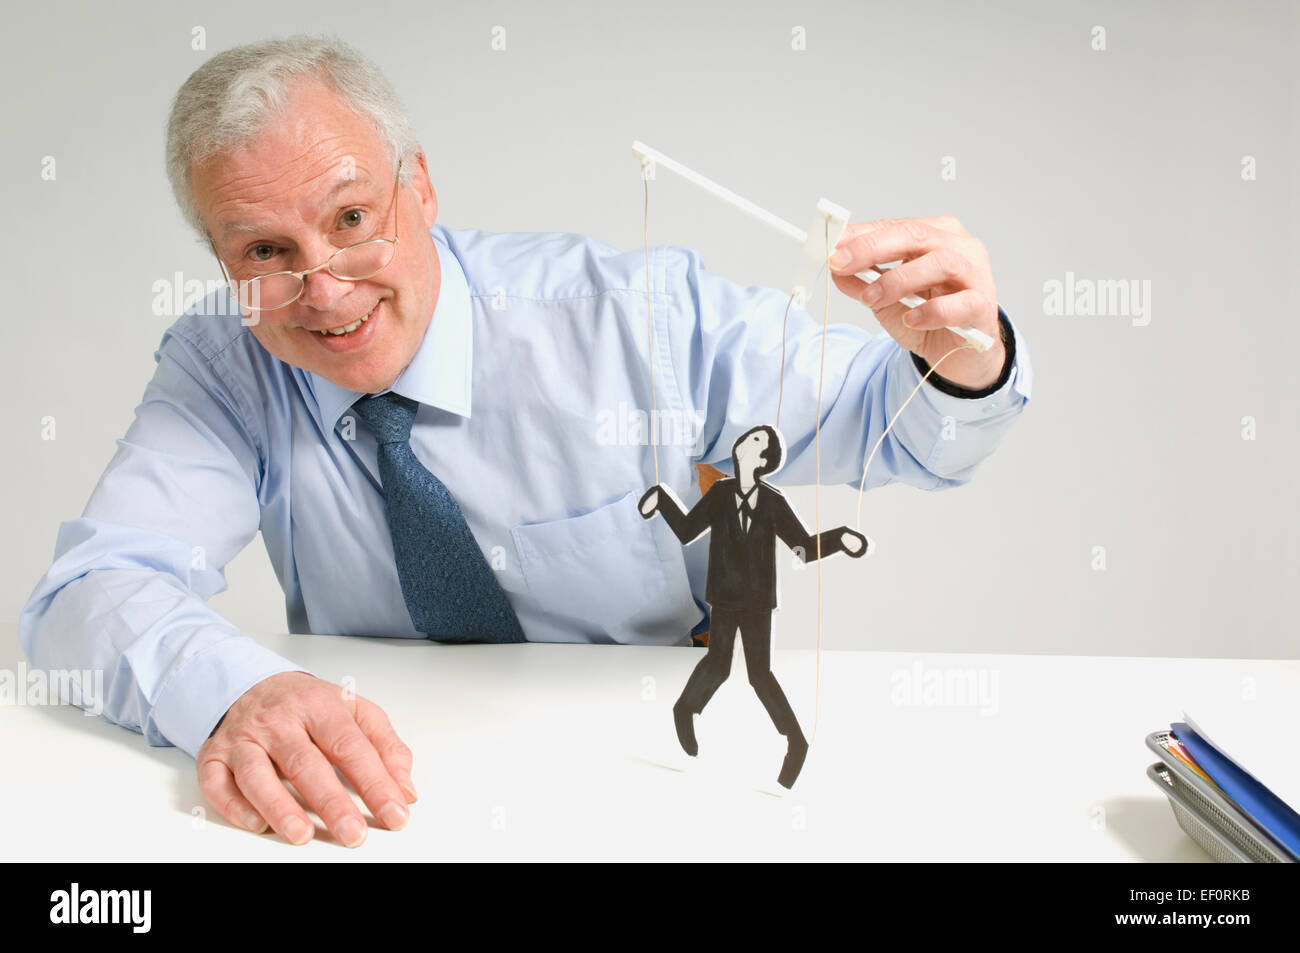 Man playing with a puppet - Stock Image